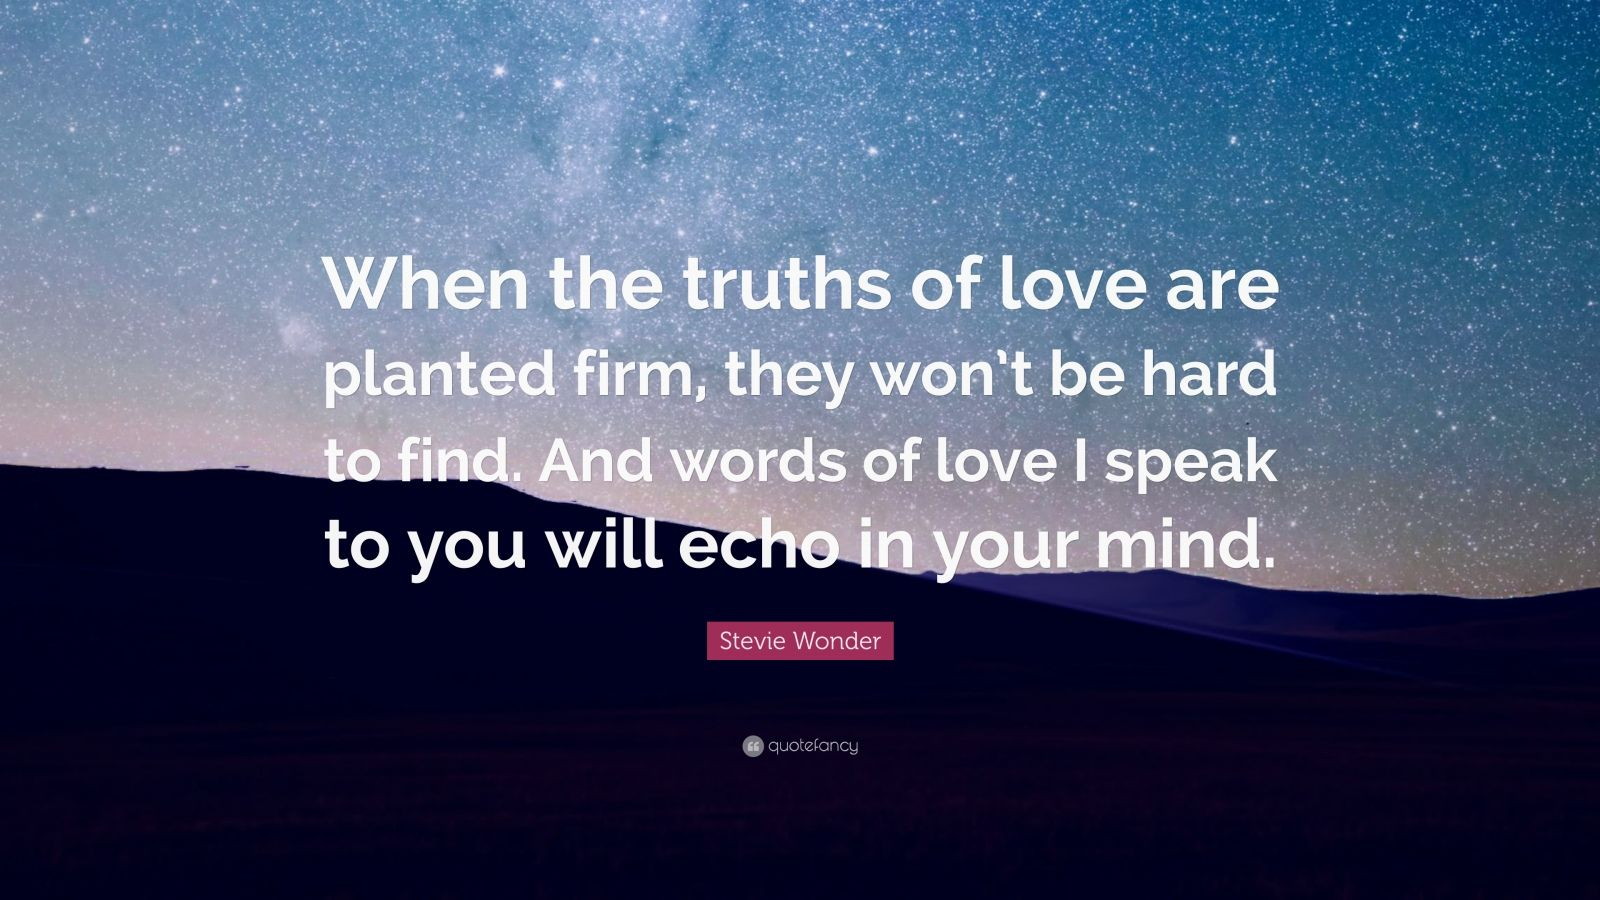 """Stevie Wonder Quote: """"When the truths of love are planted firm, they won't be hard to find. And words of love I speak to you will echo in your mind."""""""